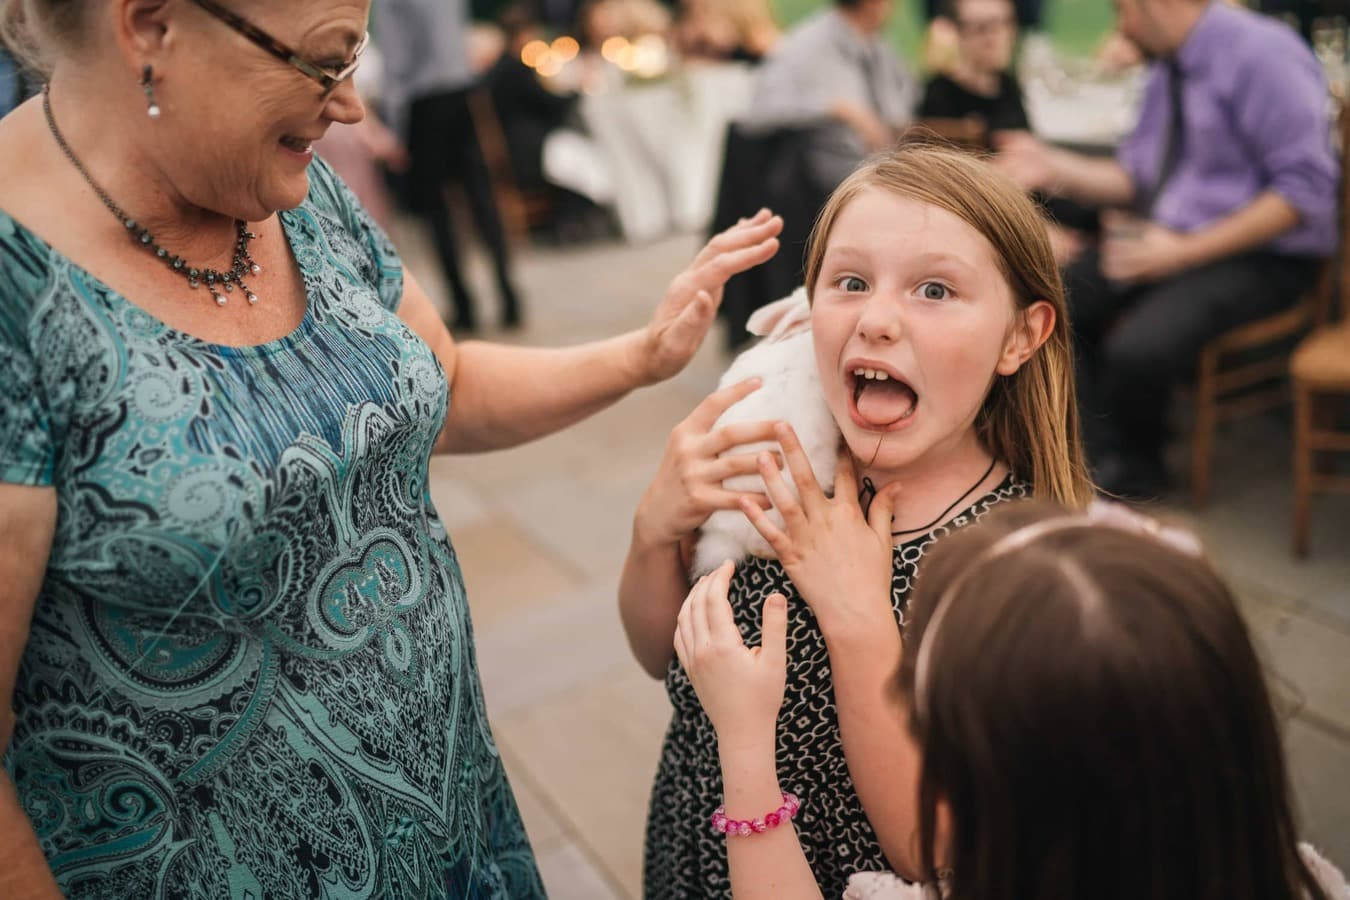 Little girl holding a white rabbit on her shoulder makes funny face by sticking out tongue during wedding reception in Hudson Valley.